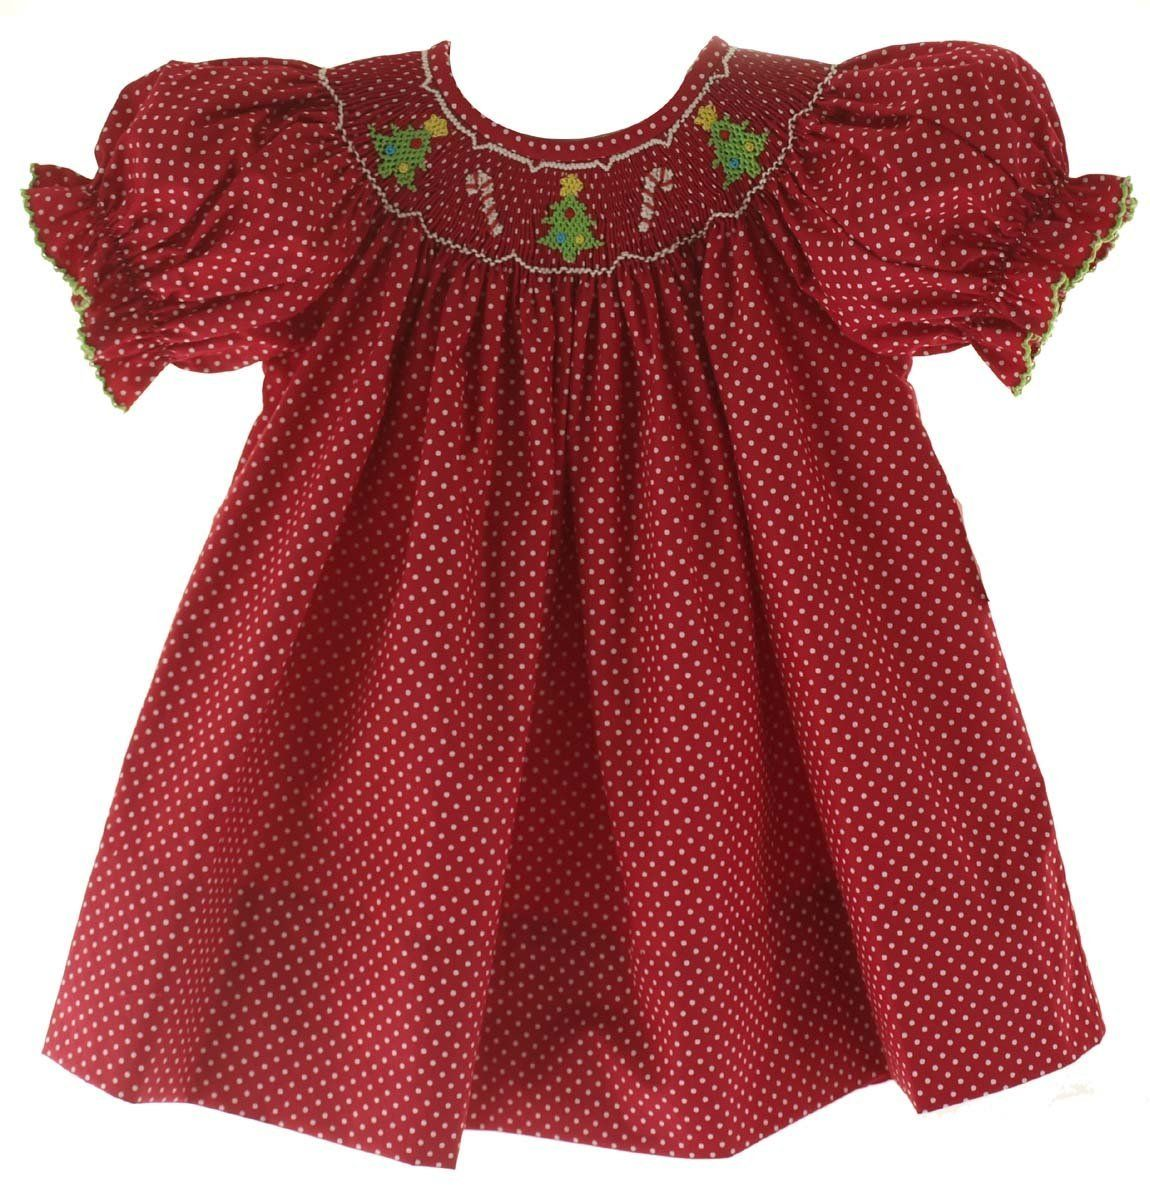 petit bebe girls red white polkadot smocked christmas dress newborn christmas outfits girl baby